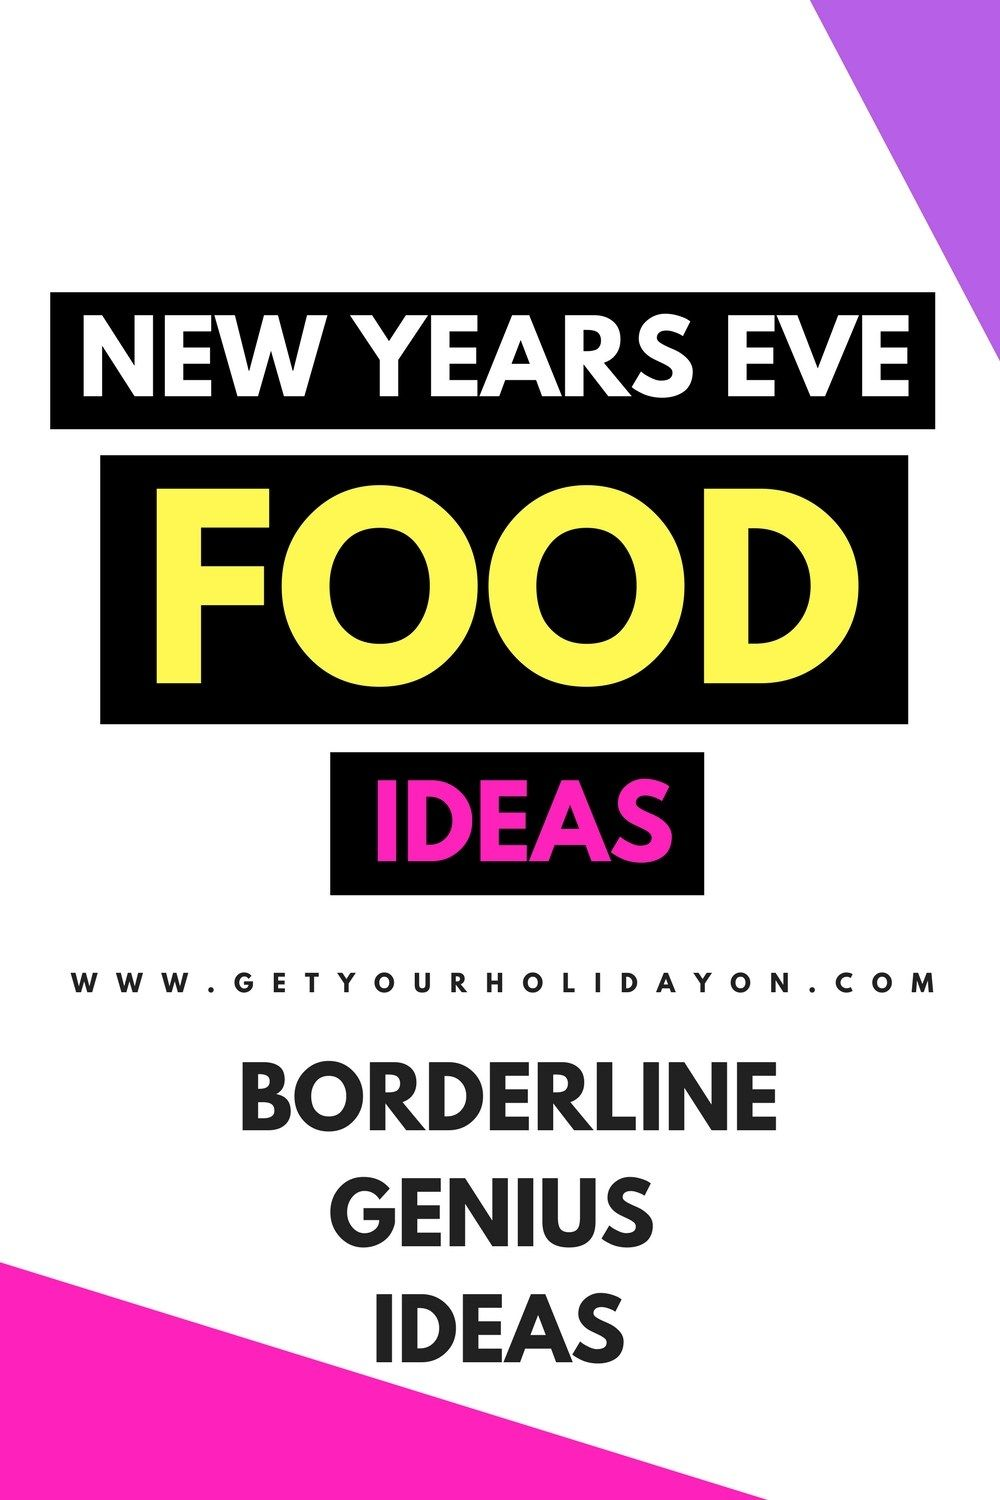 New Years Eve Party Food Ideas That Are Festive and Fun ...